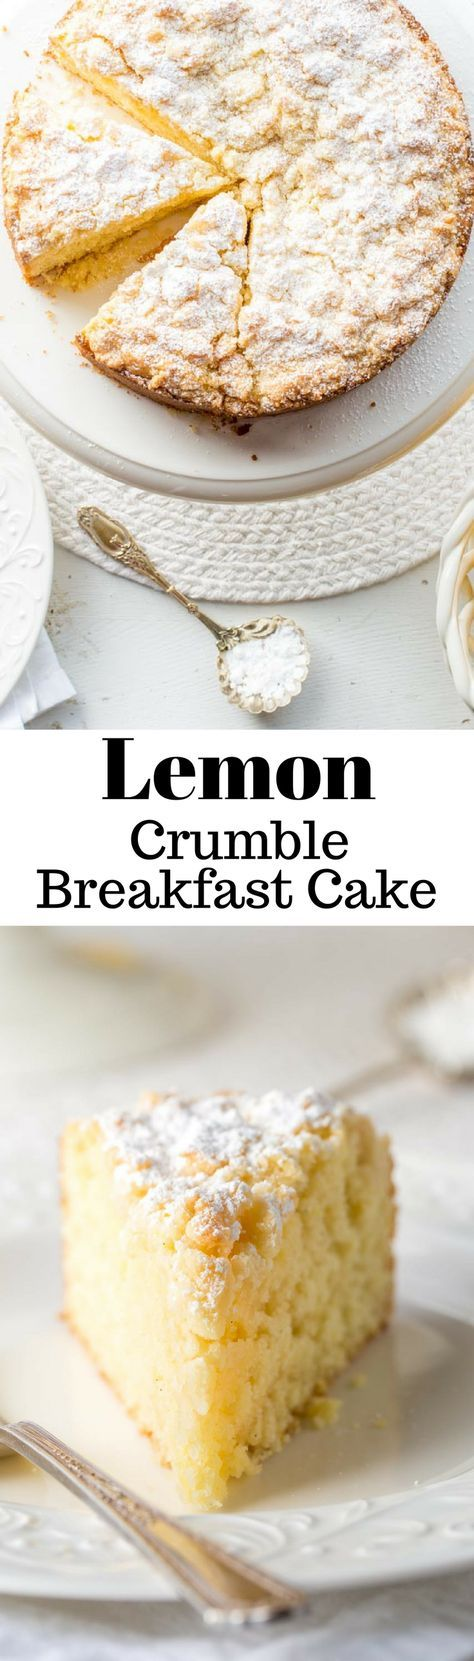 Lemon Crumble Breakfast Cake ~ from the first bite to the last, this cake is loaded with bright lemon flavor. This is a moist, tender cake topped with a sweet crumble top then dusted with powdered sugar. Whether you serve it for breakfast, brunch, afternoon tea or dessert, you'll be basking in enthusiastic, sunny compliments! www.savingdessert...   breakfast   cake   lemon   crumble   brunch   coffee cake   dessert